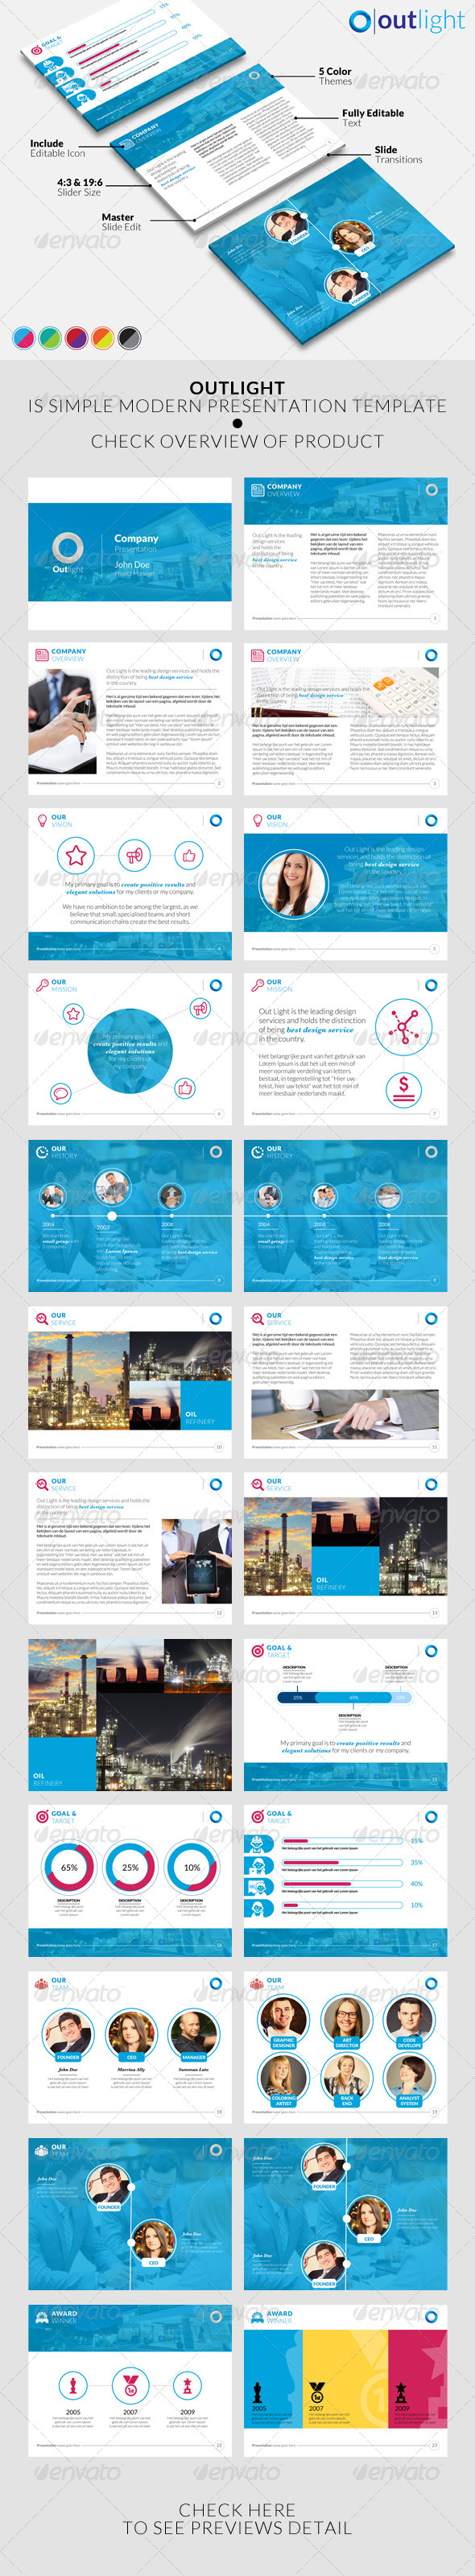 GraphicRiver Outlight Powerpoint Template 8332433